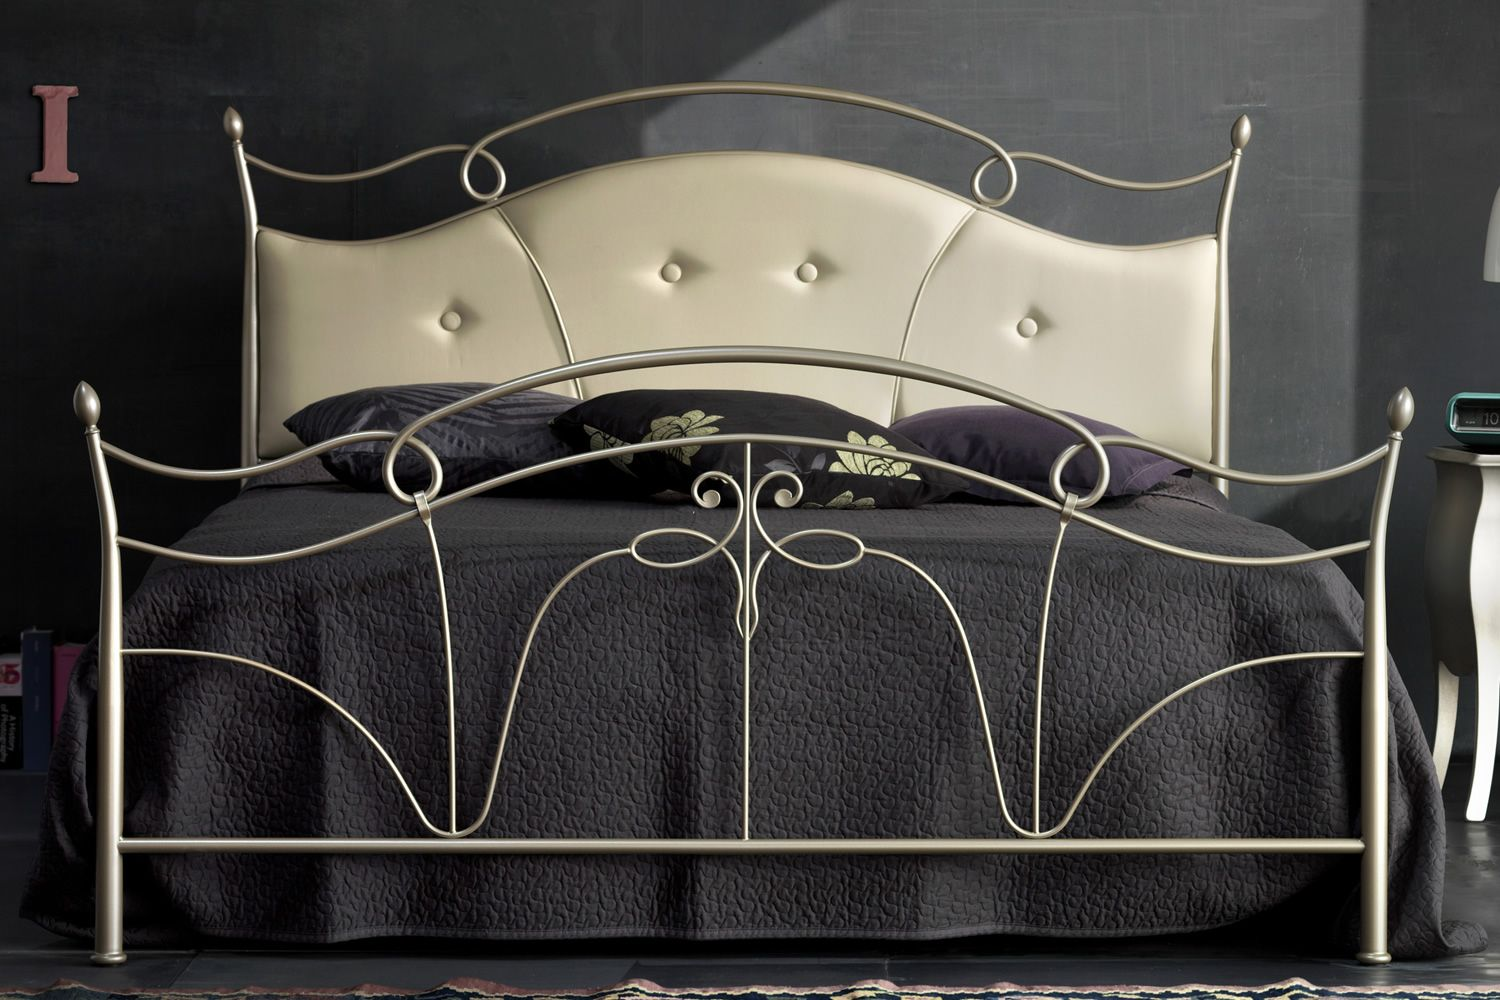 venus 4 lit double en fer forg avec t te du lit. Black Bedroom Furniture Sets. Home Design Ideas